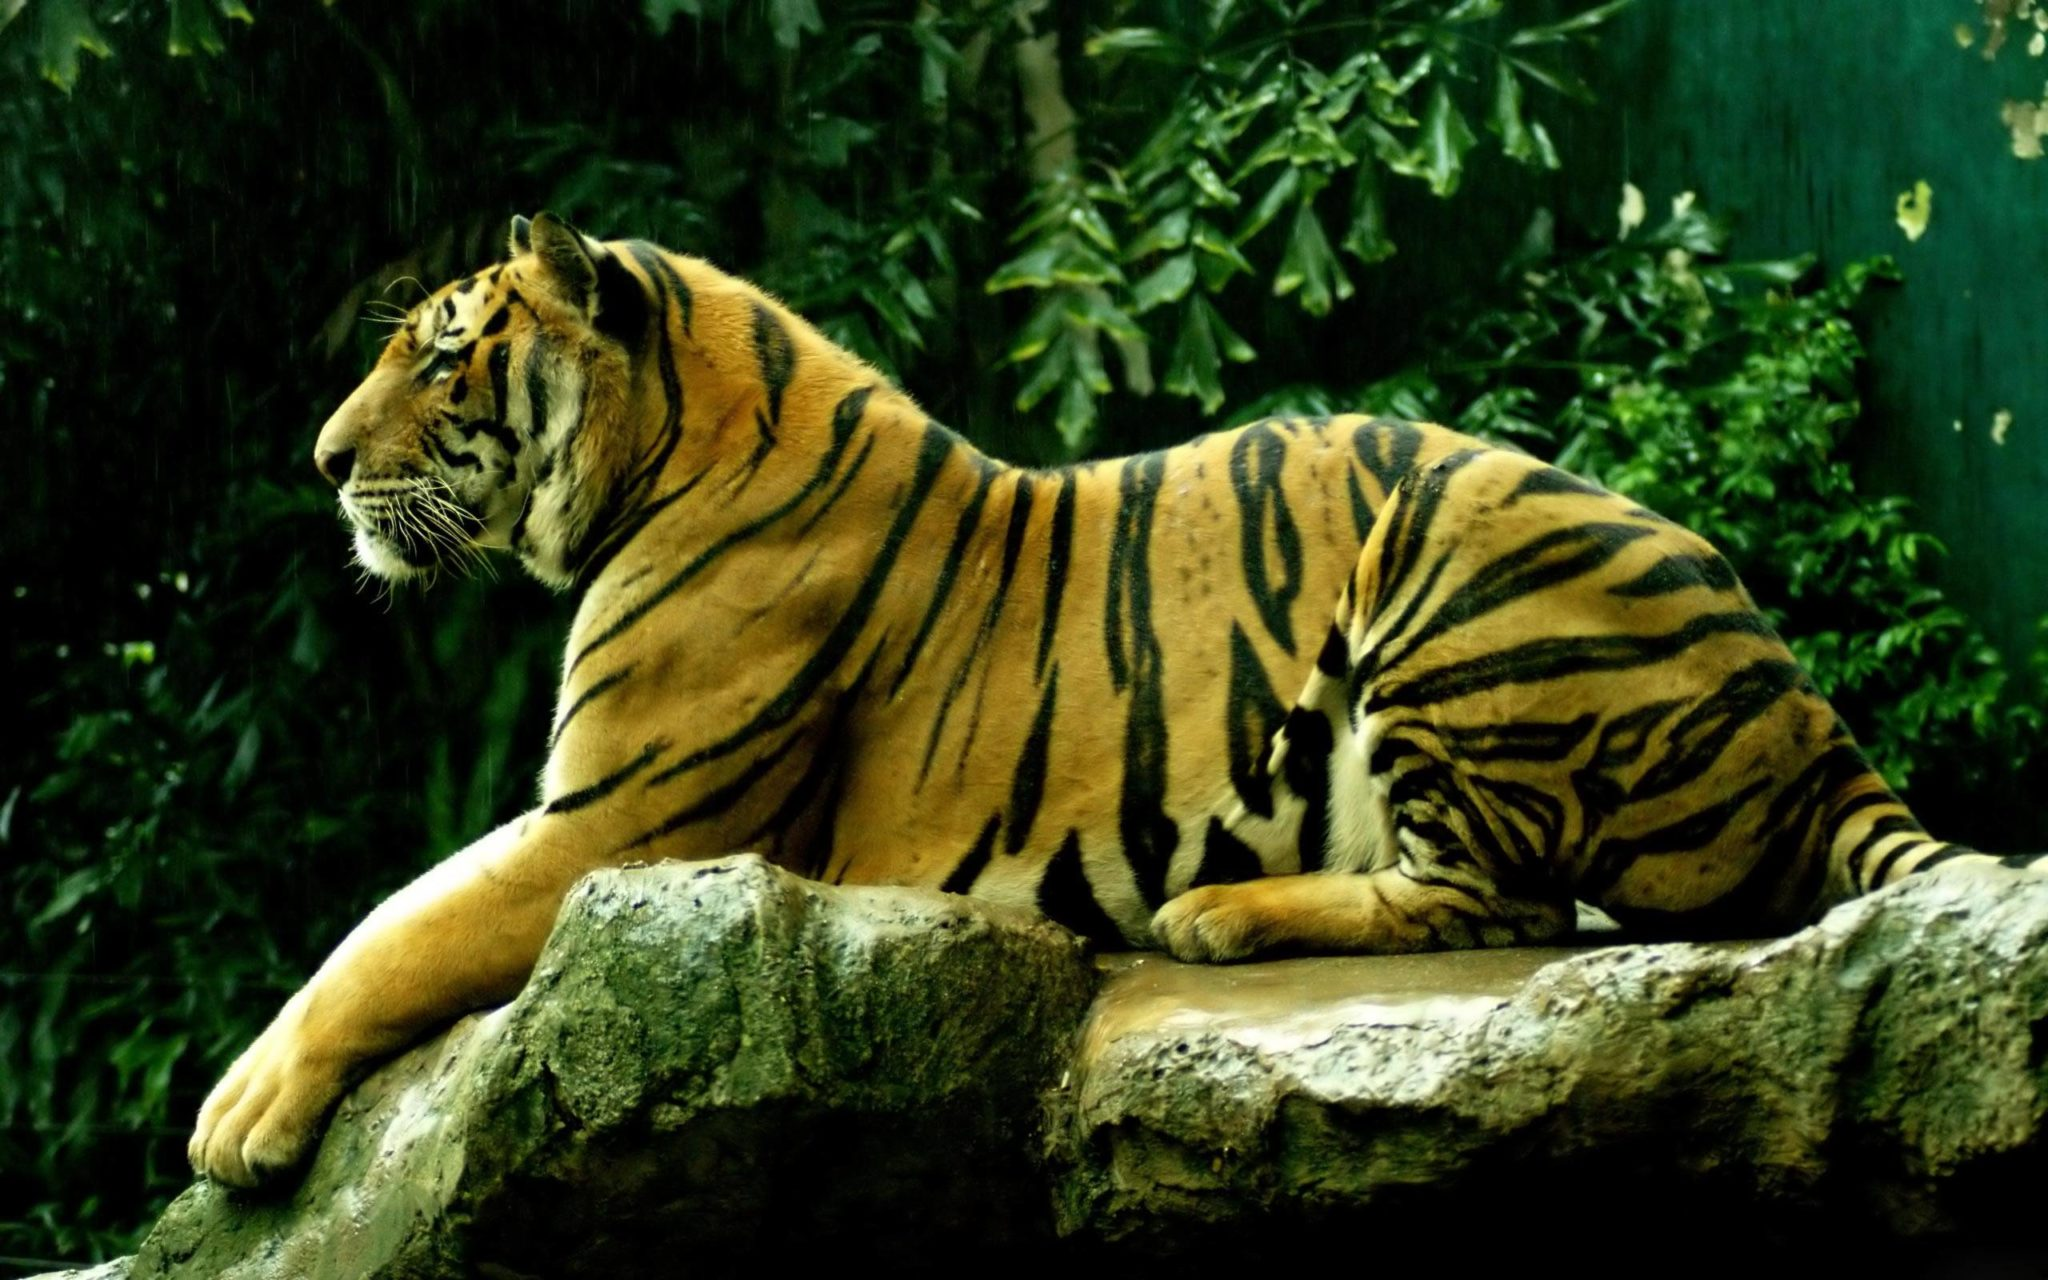 Killer Whale Hd Wallpaper Best 35 Bengal Tiger Pictures And Wallpapers